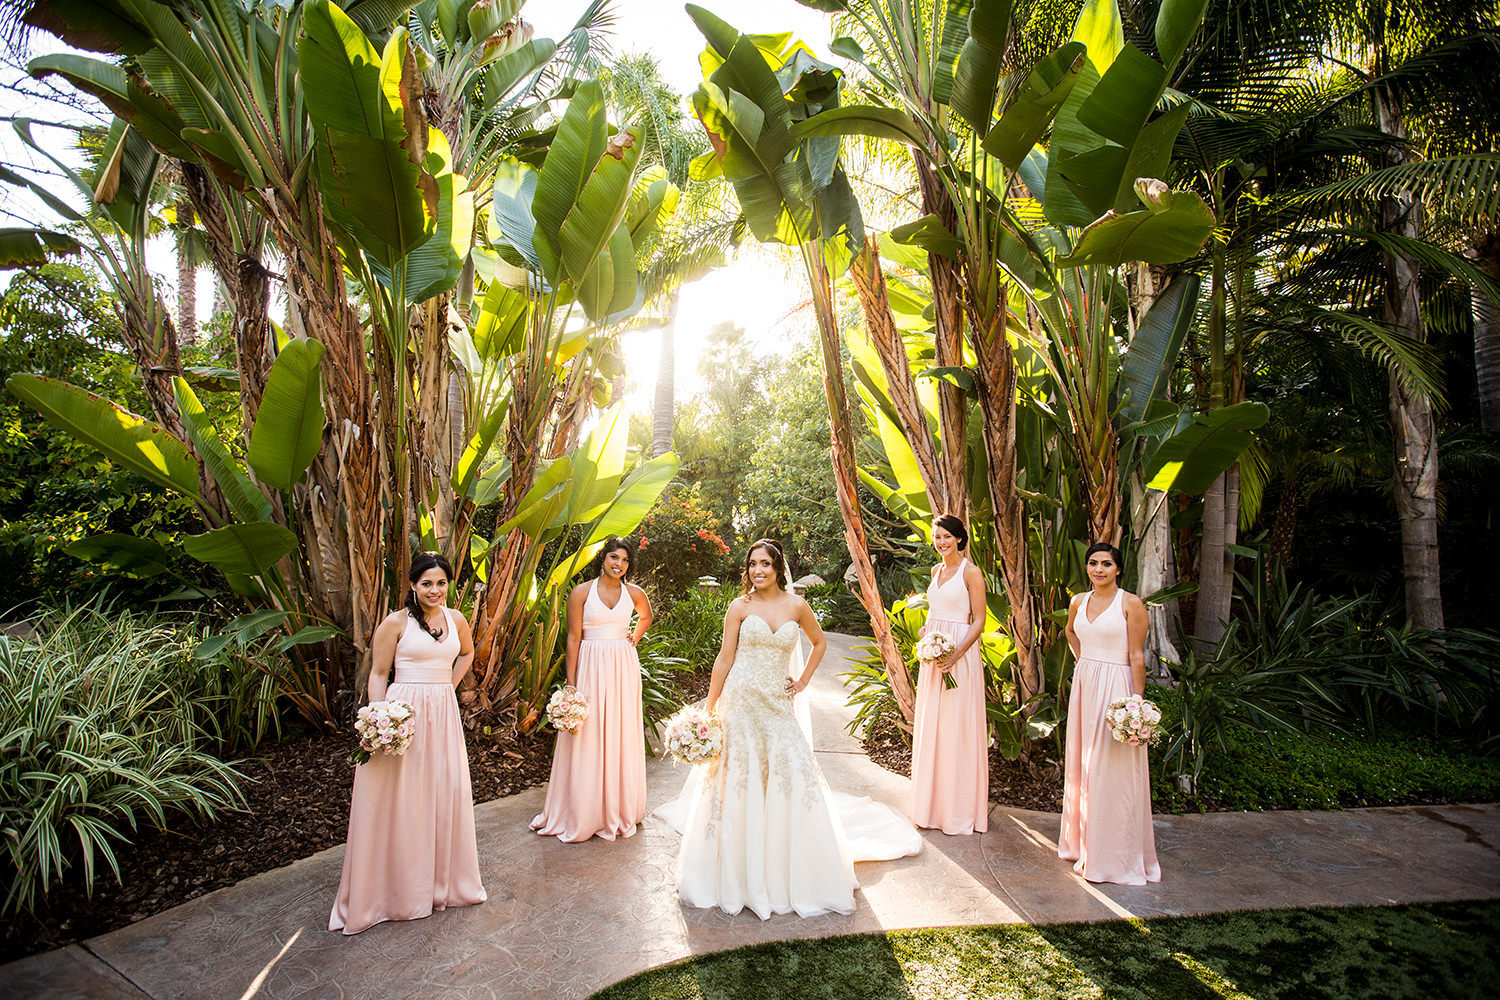 New posing ideas for bridesmaids